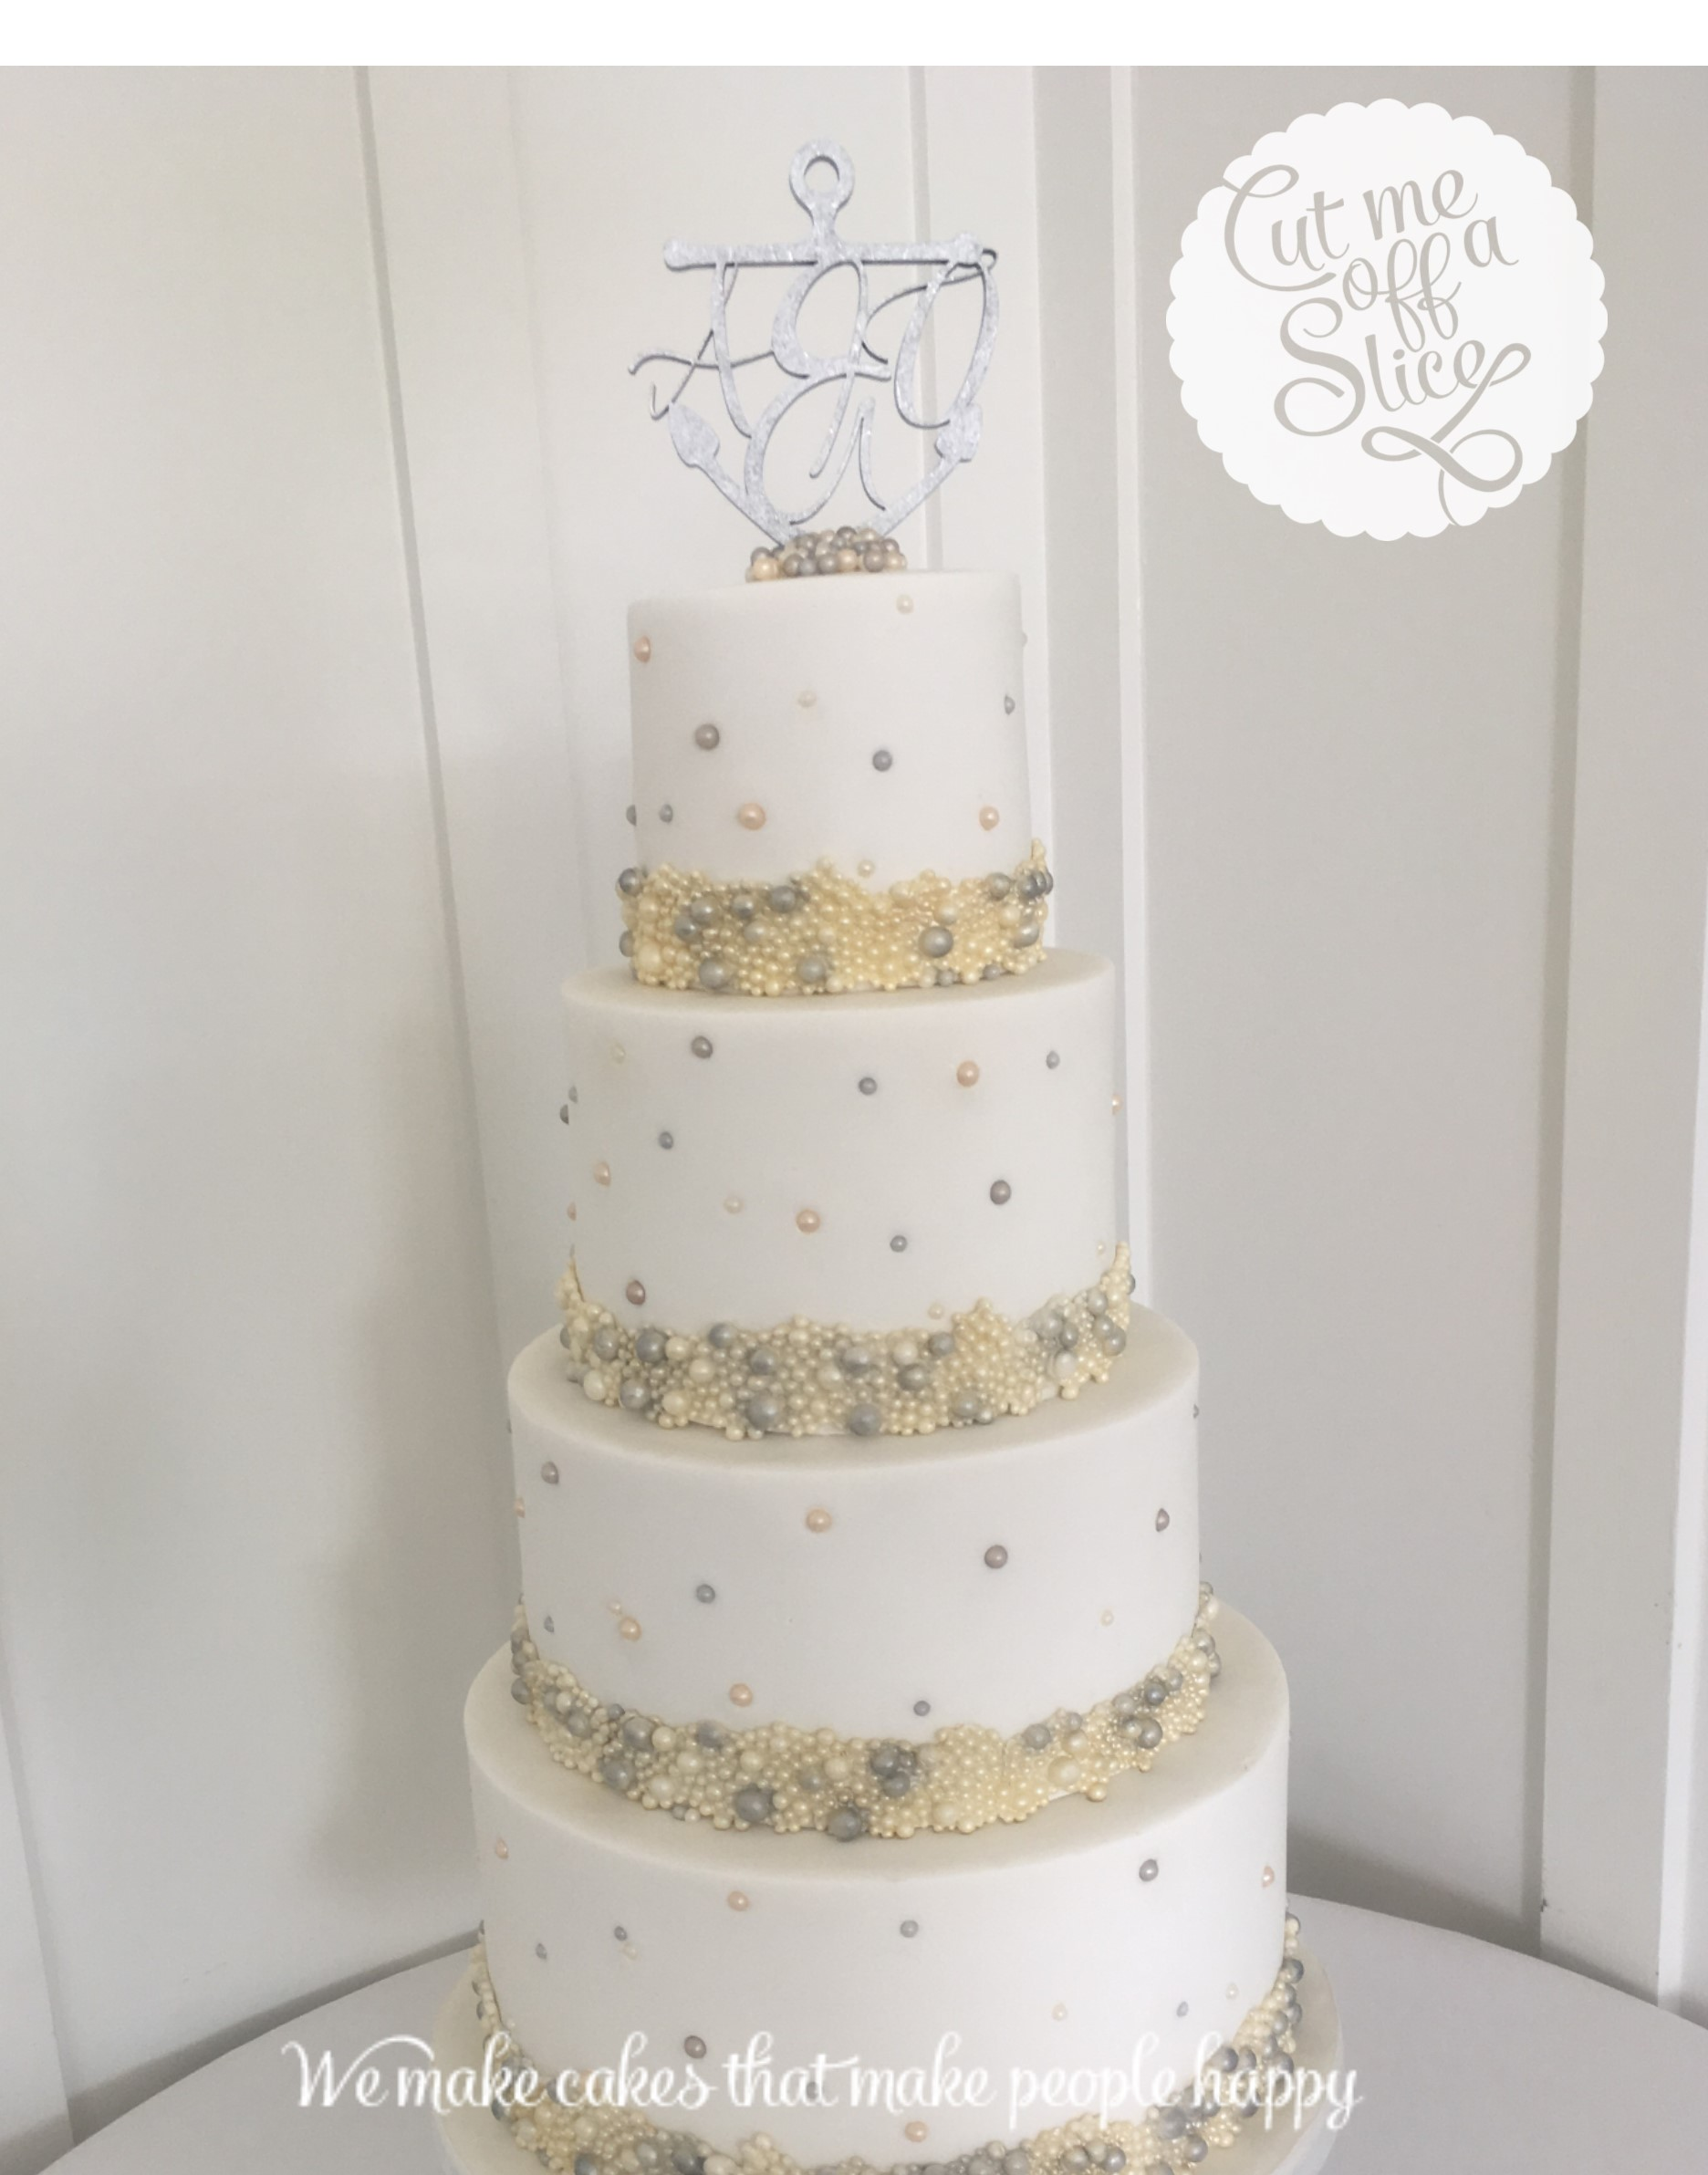 Themed - Inspiration , Cut me off a slice, the cake makers for Devon ...